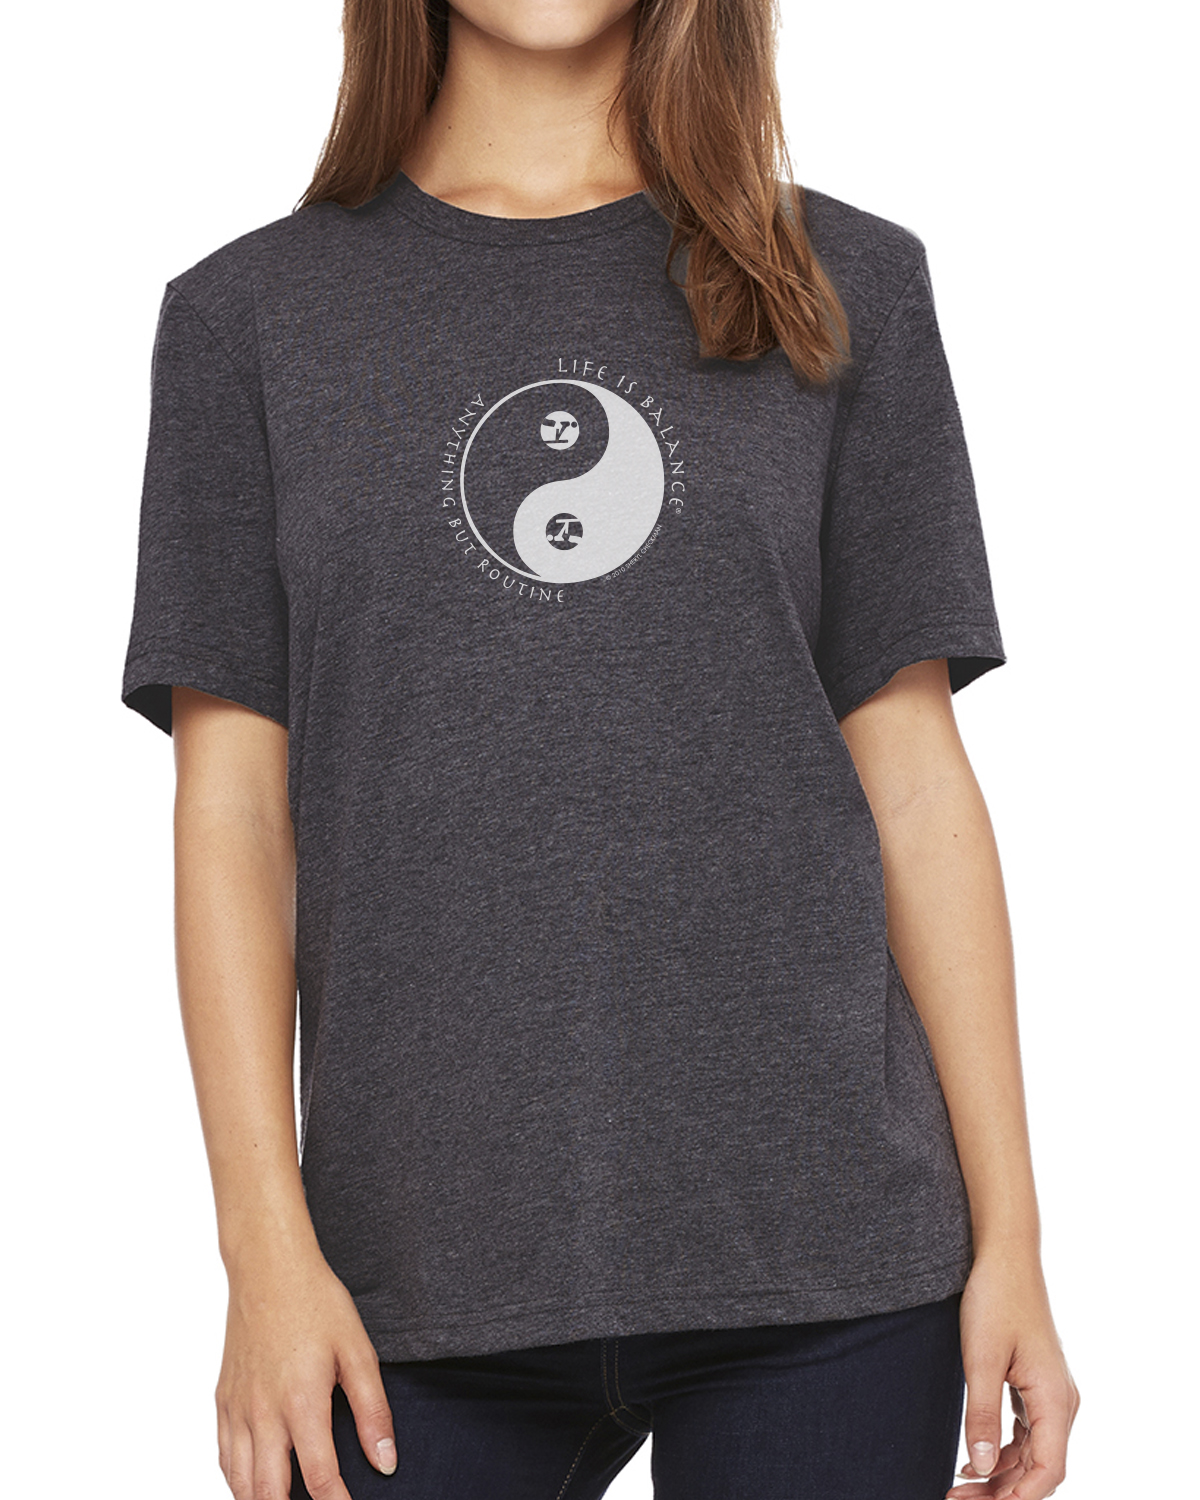 Women's short sleeve gymnastics t-shirt (dark gray heather)